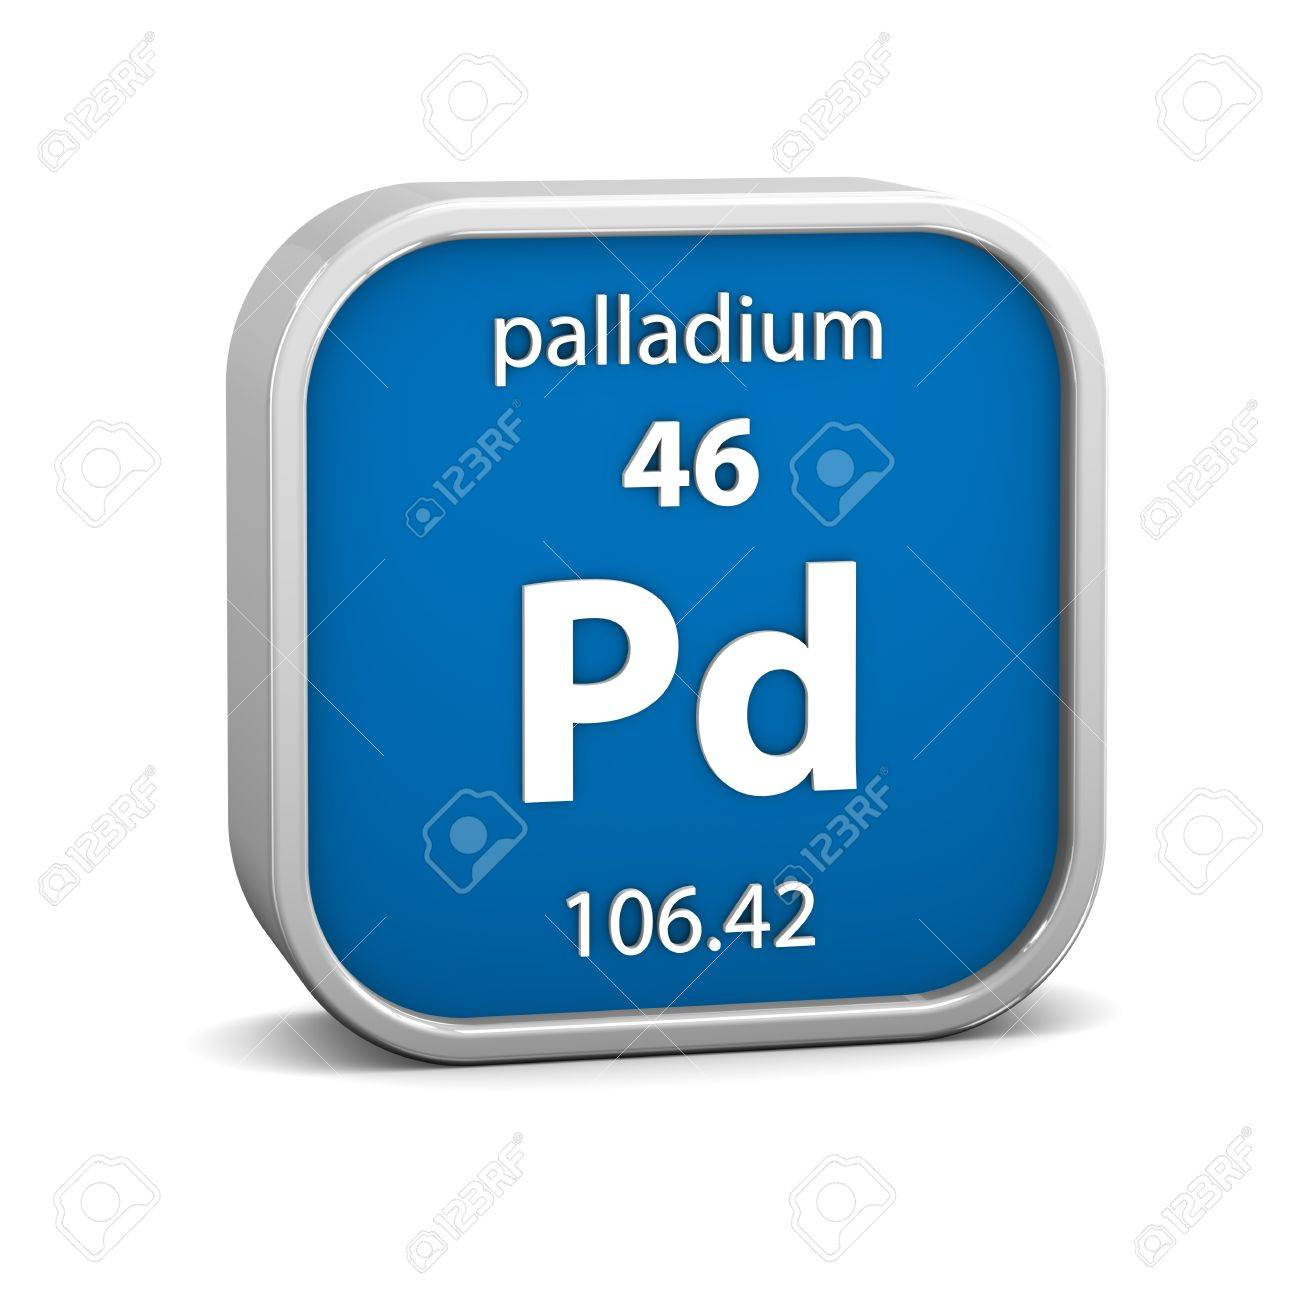 Palladium Material On The Periodic Table Part Of A Series Stock